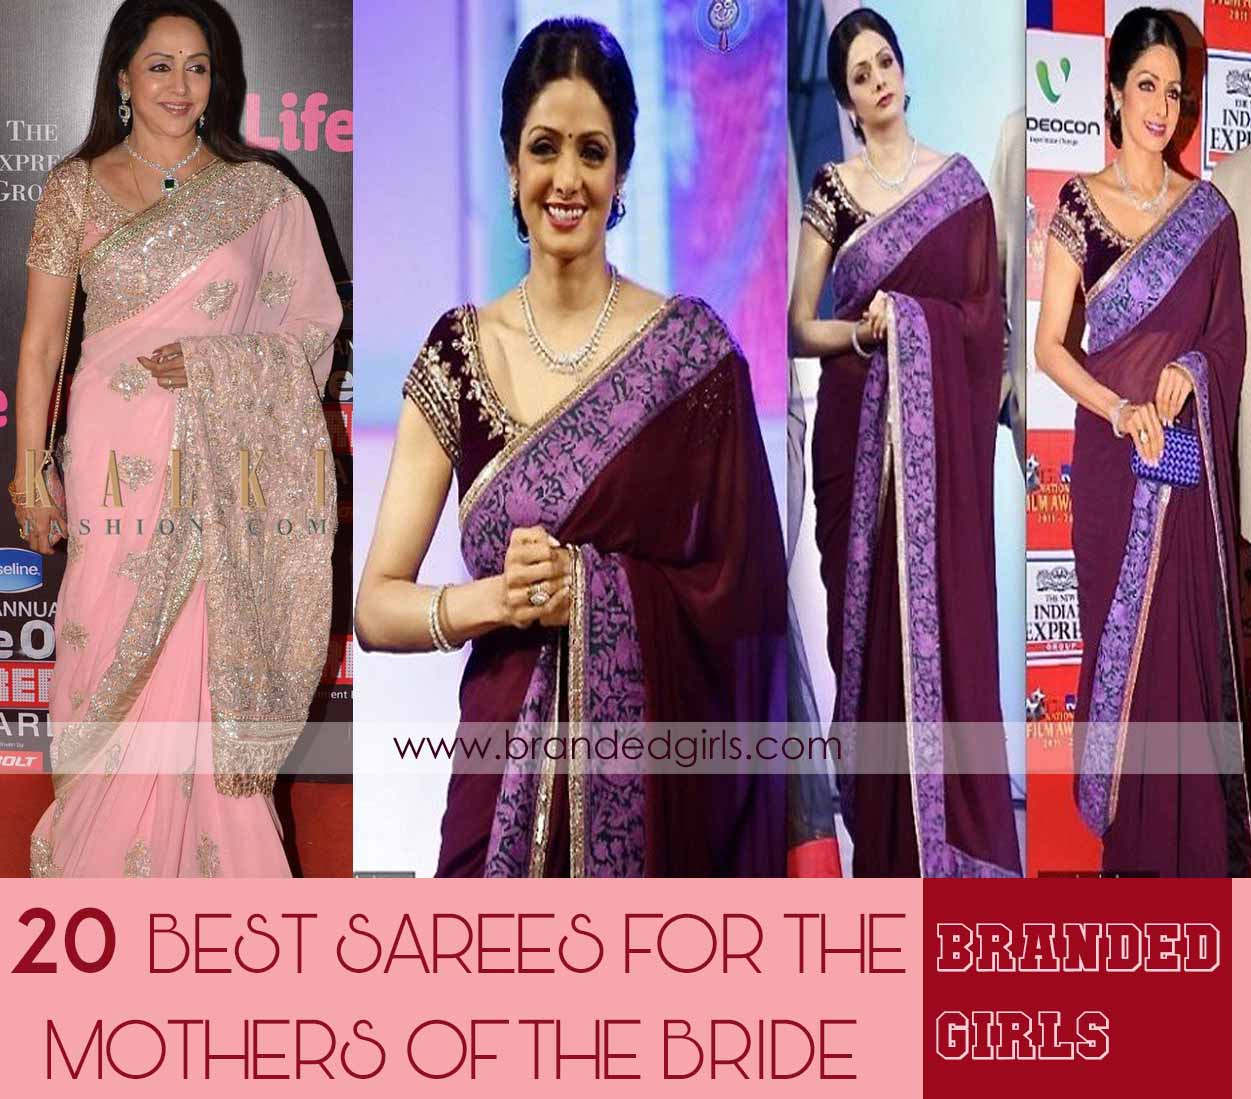 polyvore-sample-14 20 Best Sarees for the Mothers of The Bride this Year 2016